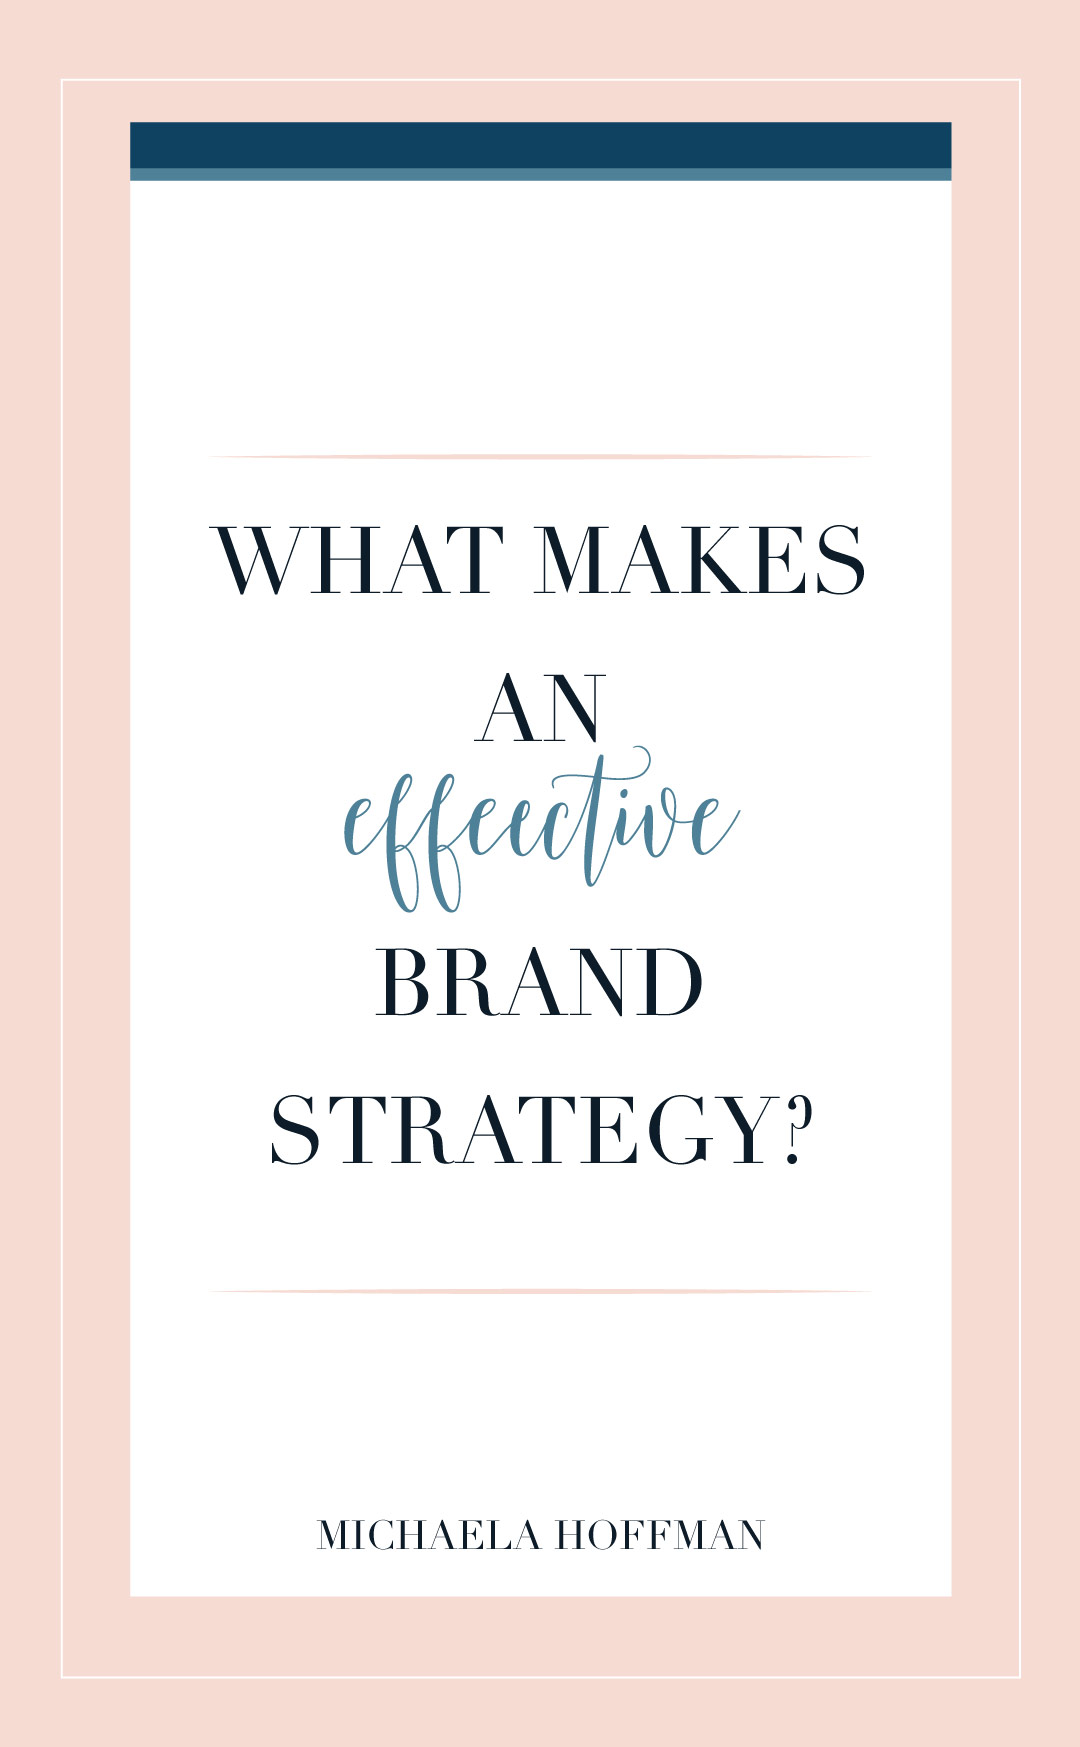 Effective Brand Strategy + 6 tips for optimizing your branding